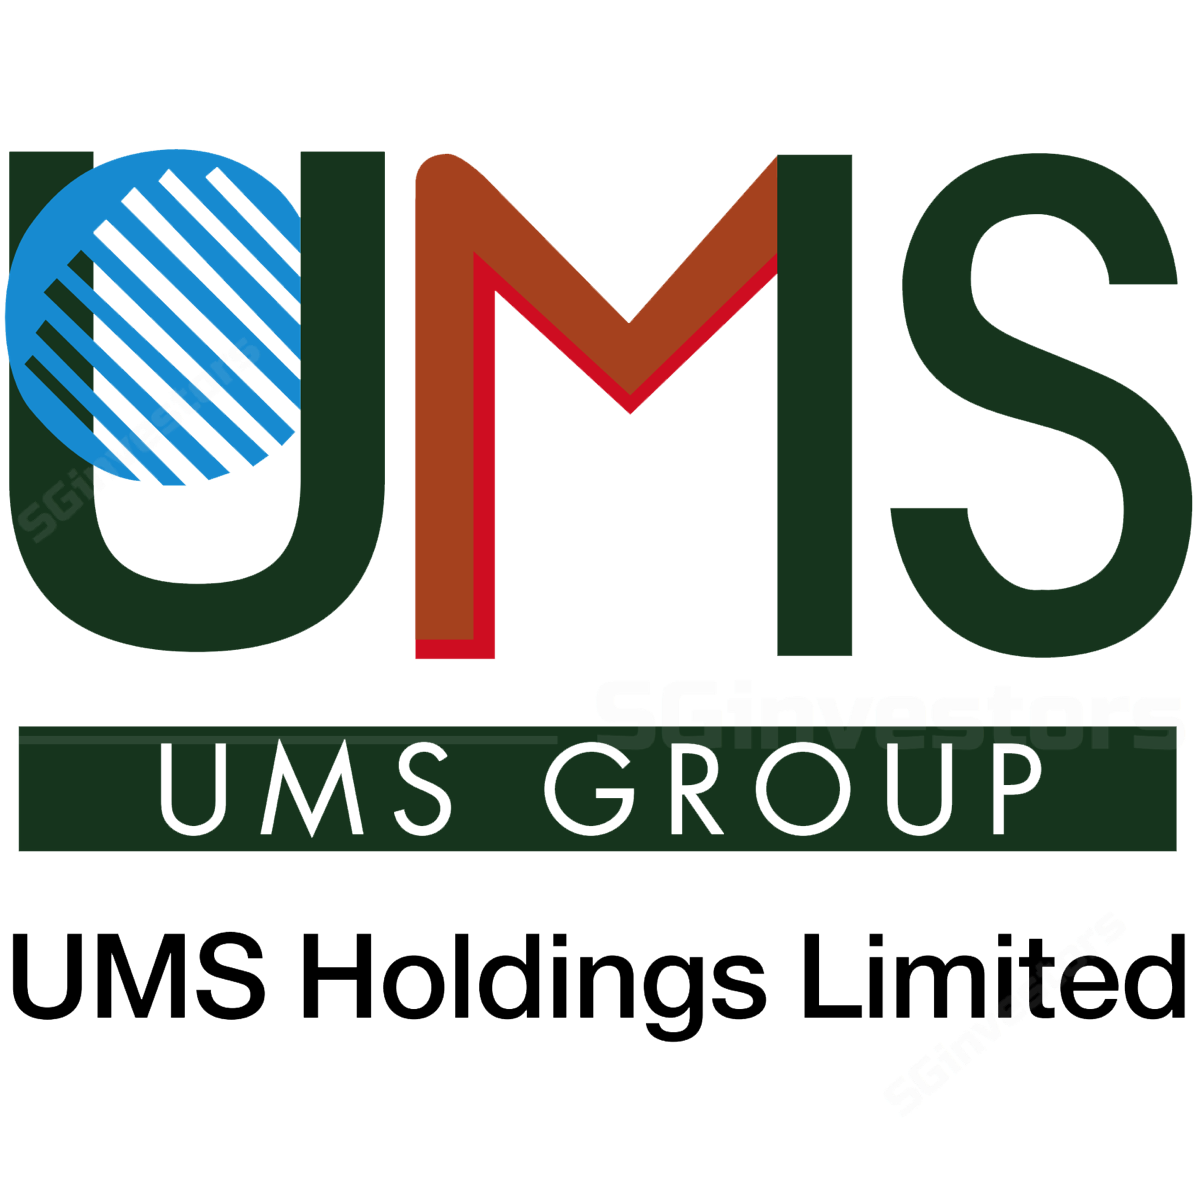 UMS Holdings Ltd - CGS-CIMB Research 2018-08-14: Expects Softer Revenue In 2h